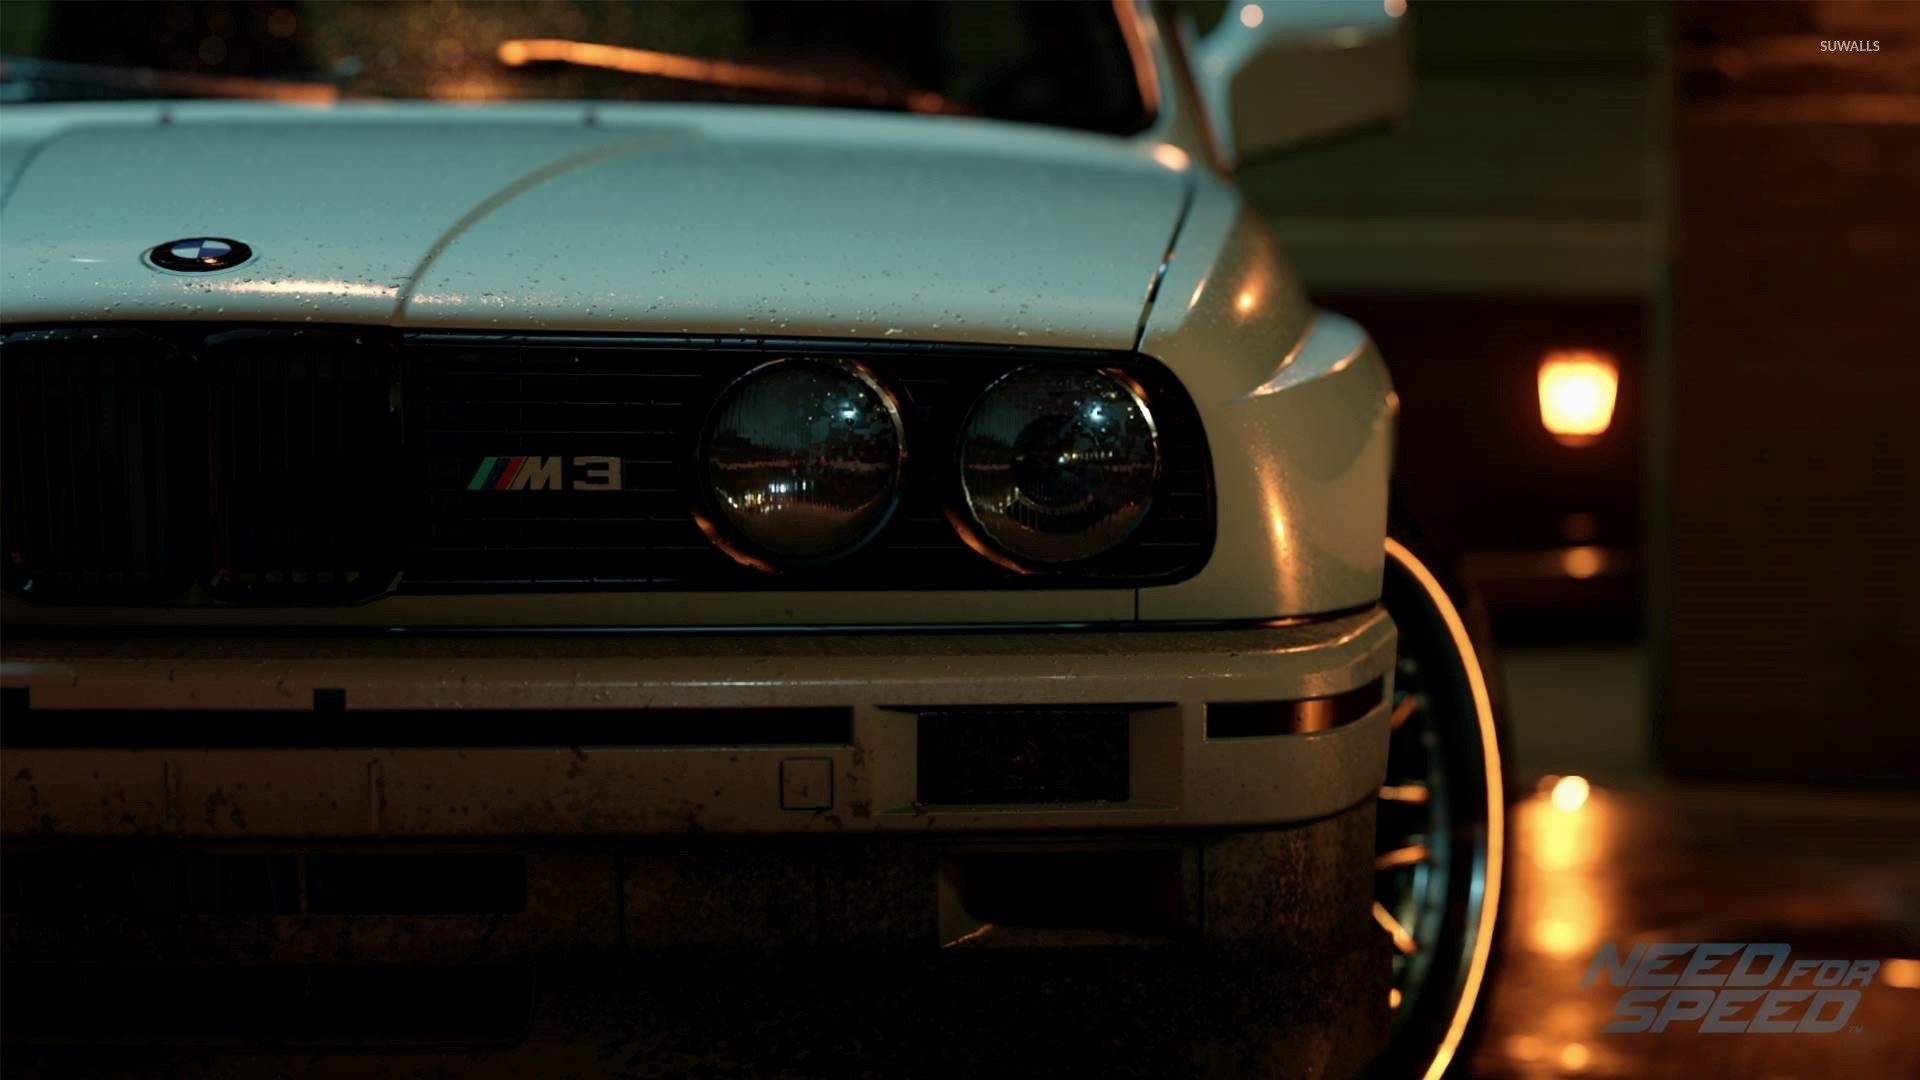 Res: 1920x1080, BMW M3 - Need for Speed wallpaper